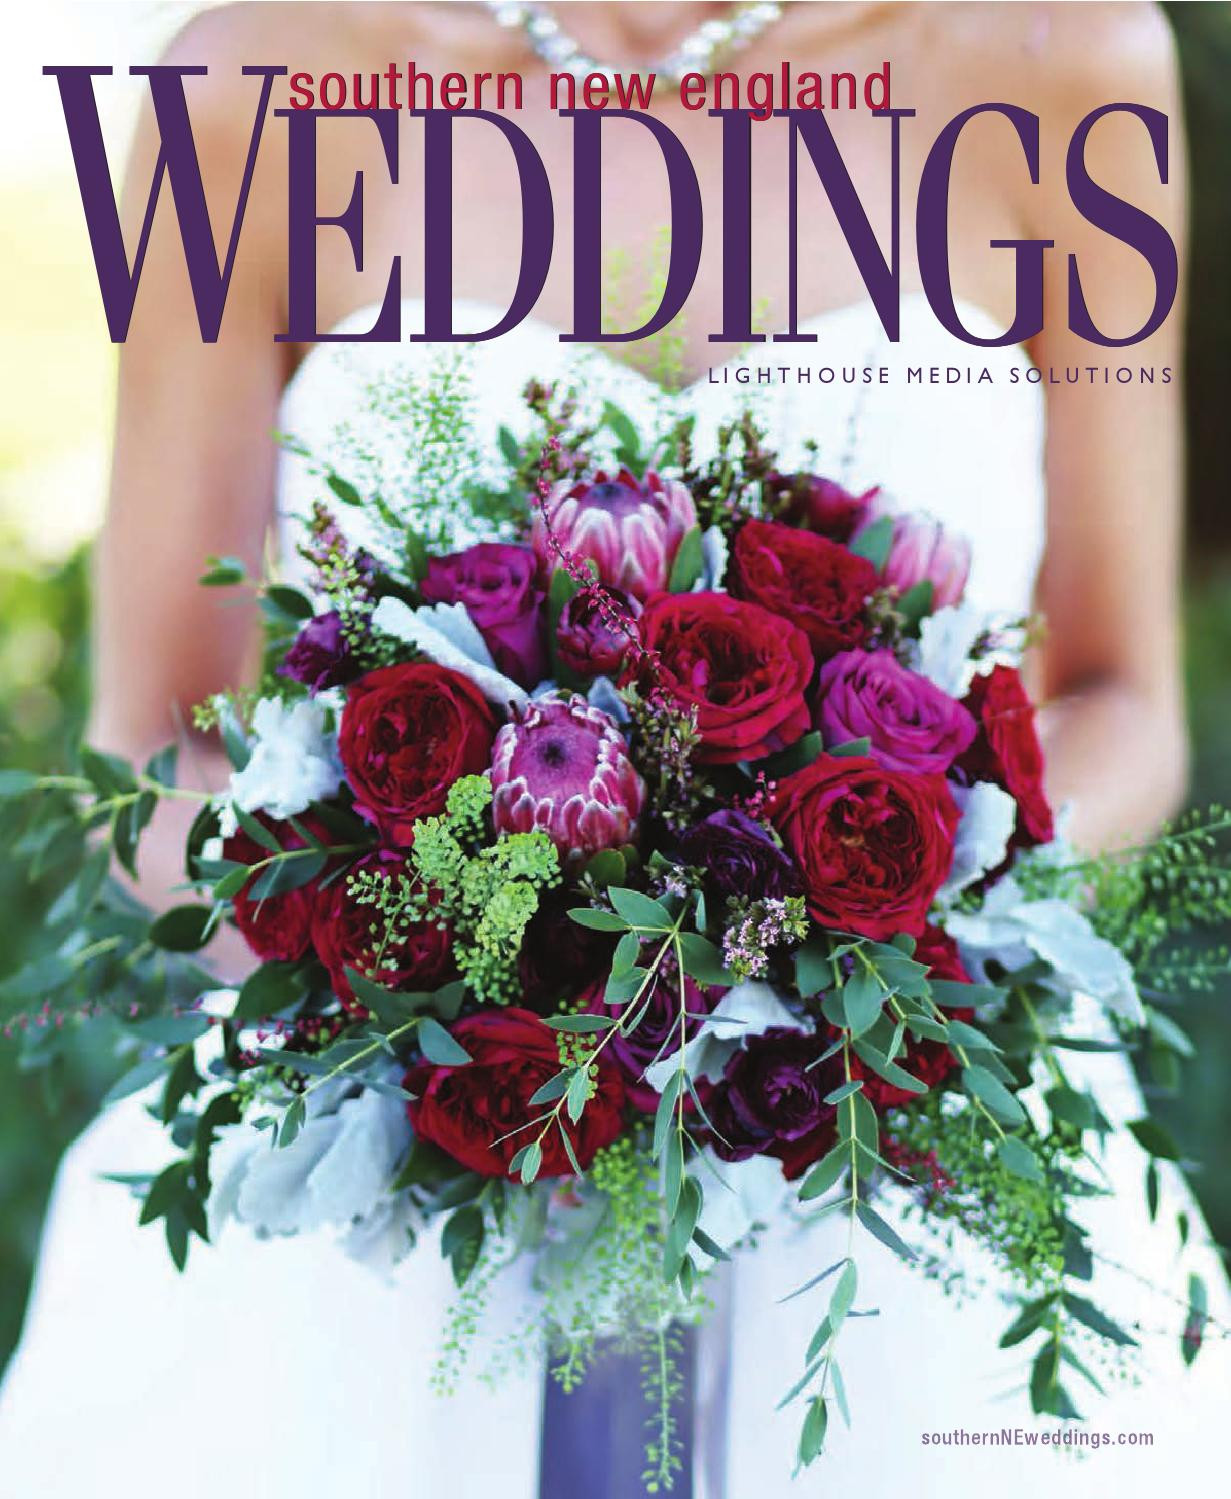 heart shaped sand ceremony vase set of southern new england weddings 2016 by lighthouse media solutions issuu intended for page 1